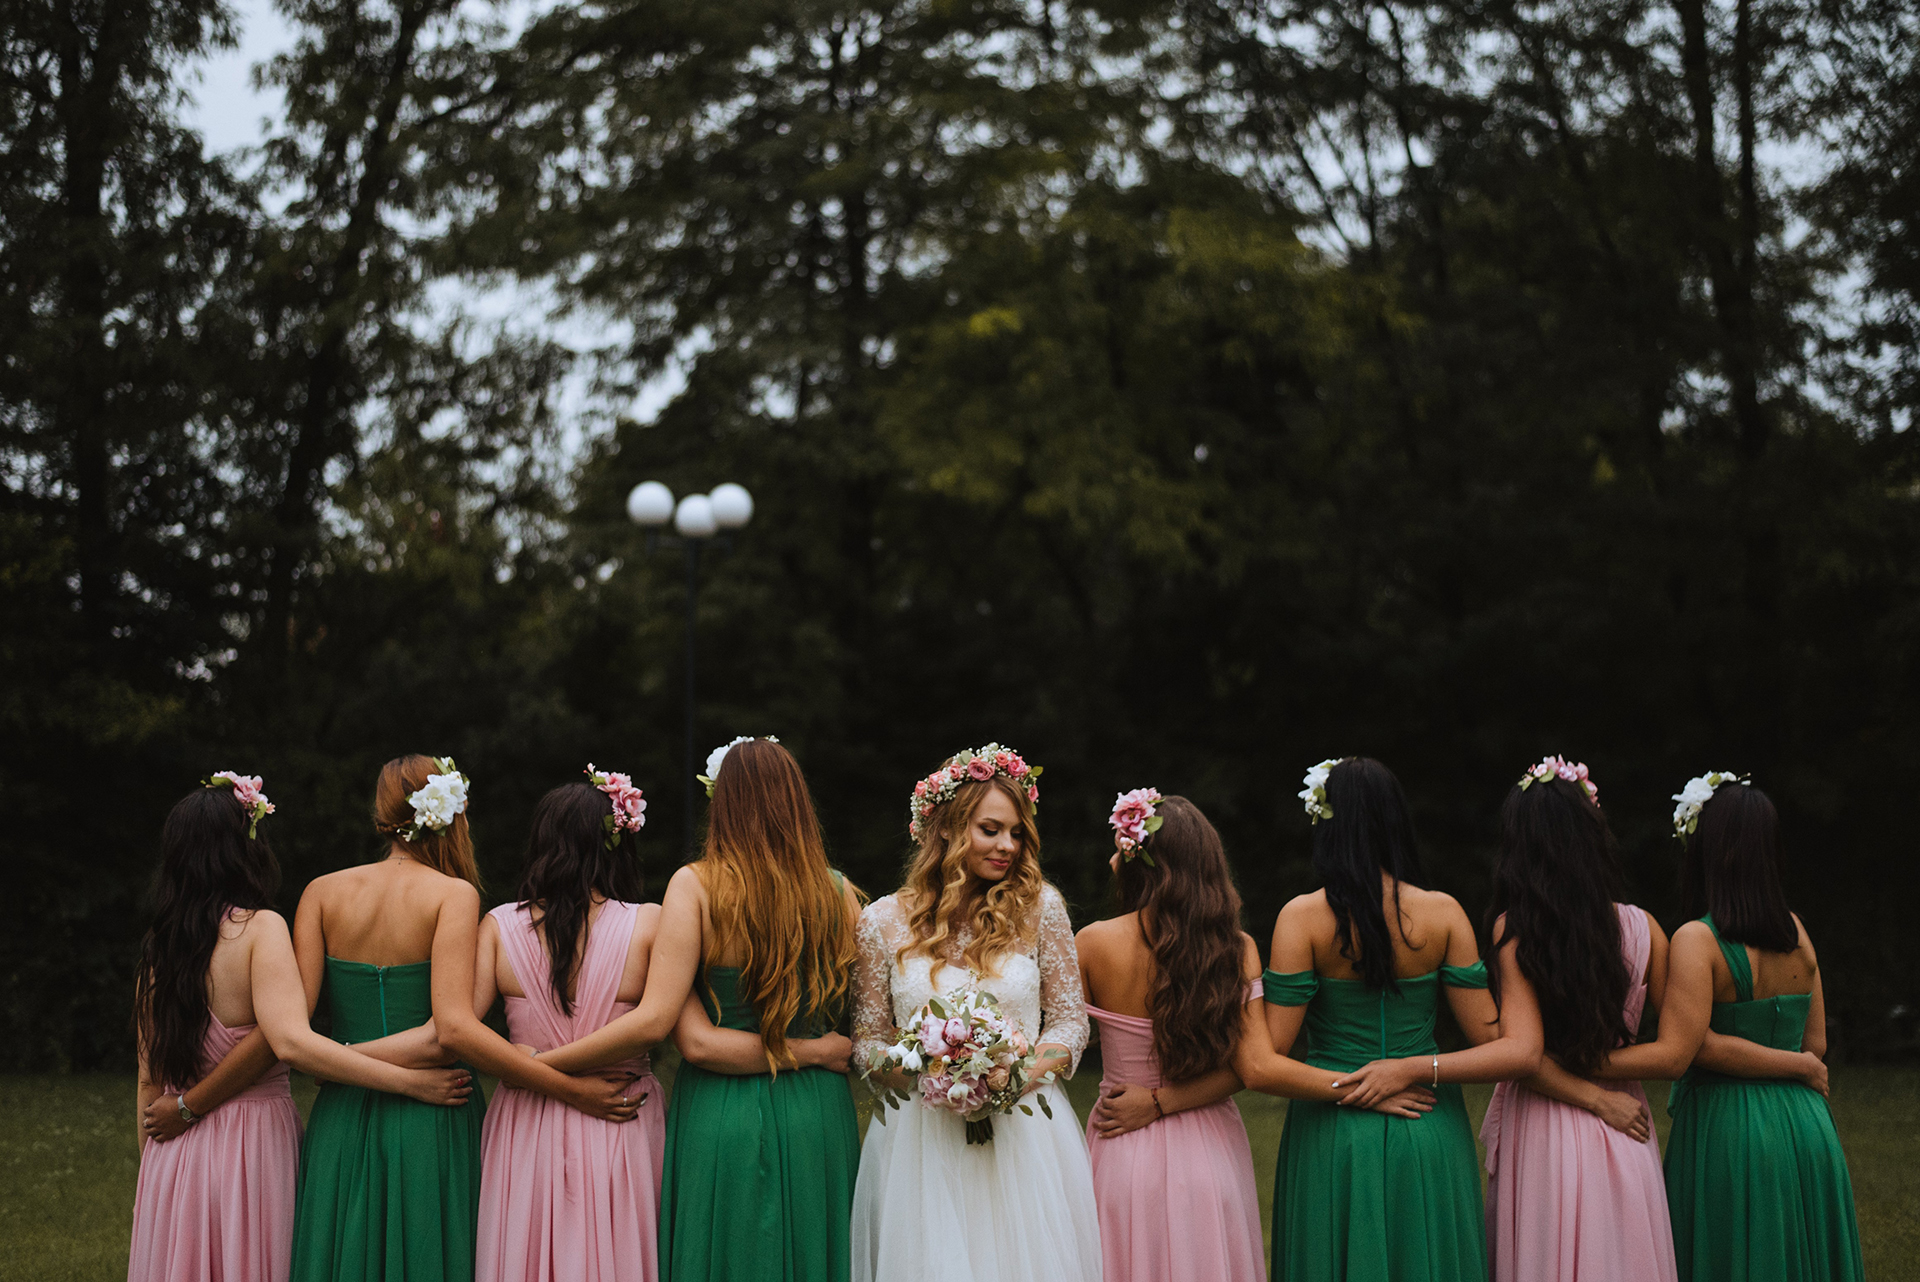 wedding-pink-and-green-bridesmaids-dresses-tulle-and-lace-wedding-dress (13)